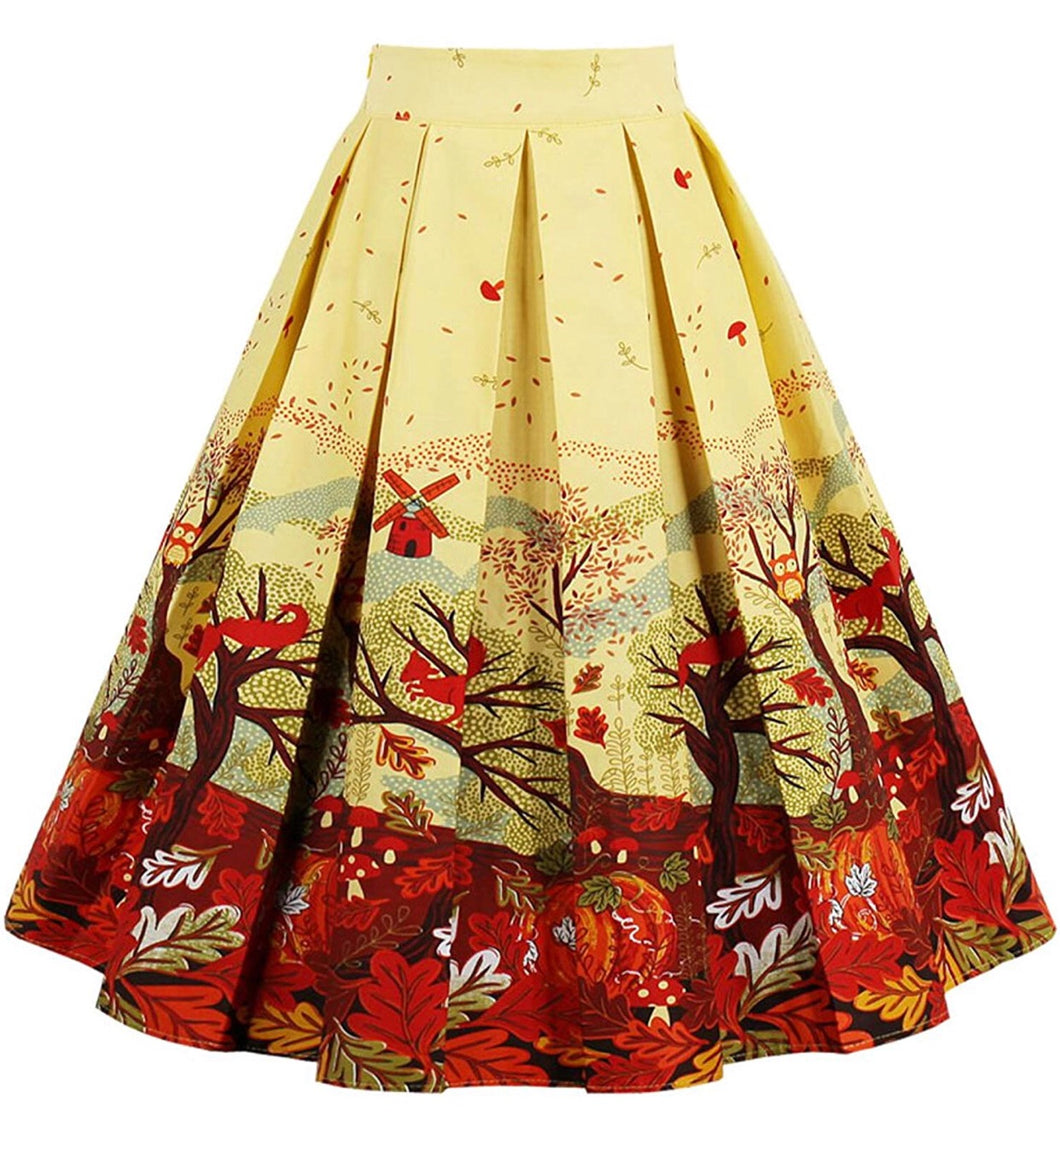 A-Line Pleated Autumn Themed Skirts, Sizes XSmall - 3XLarge